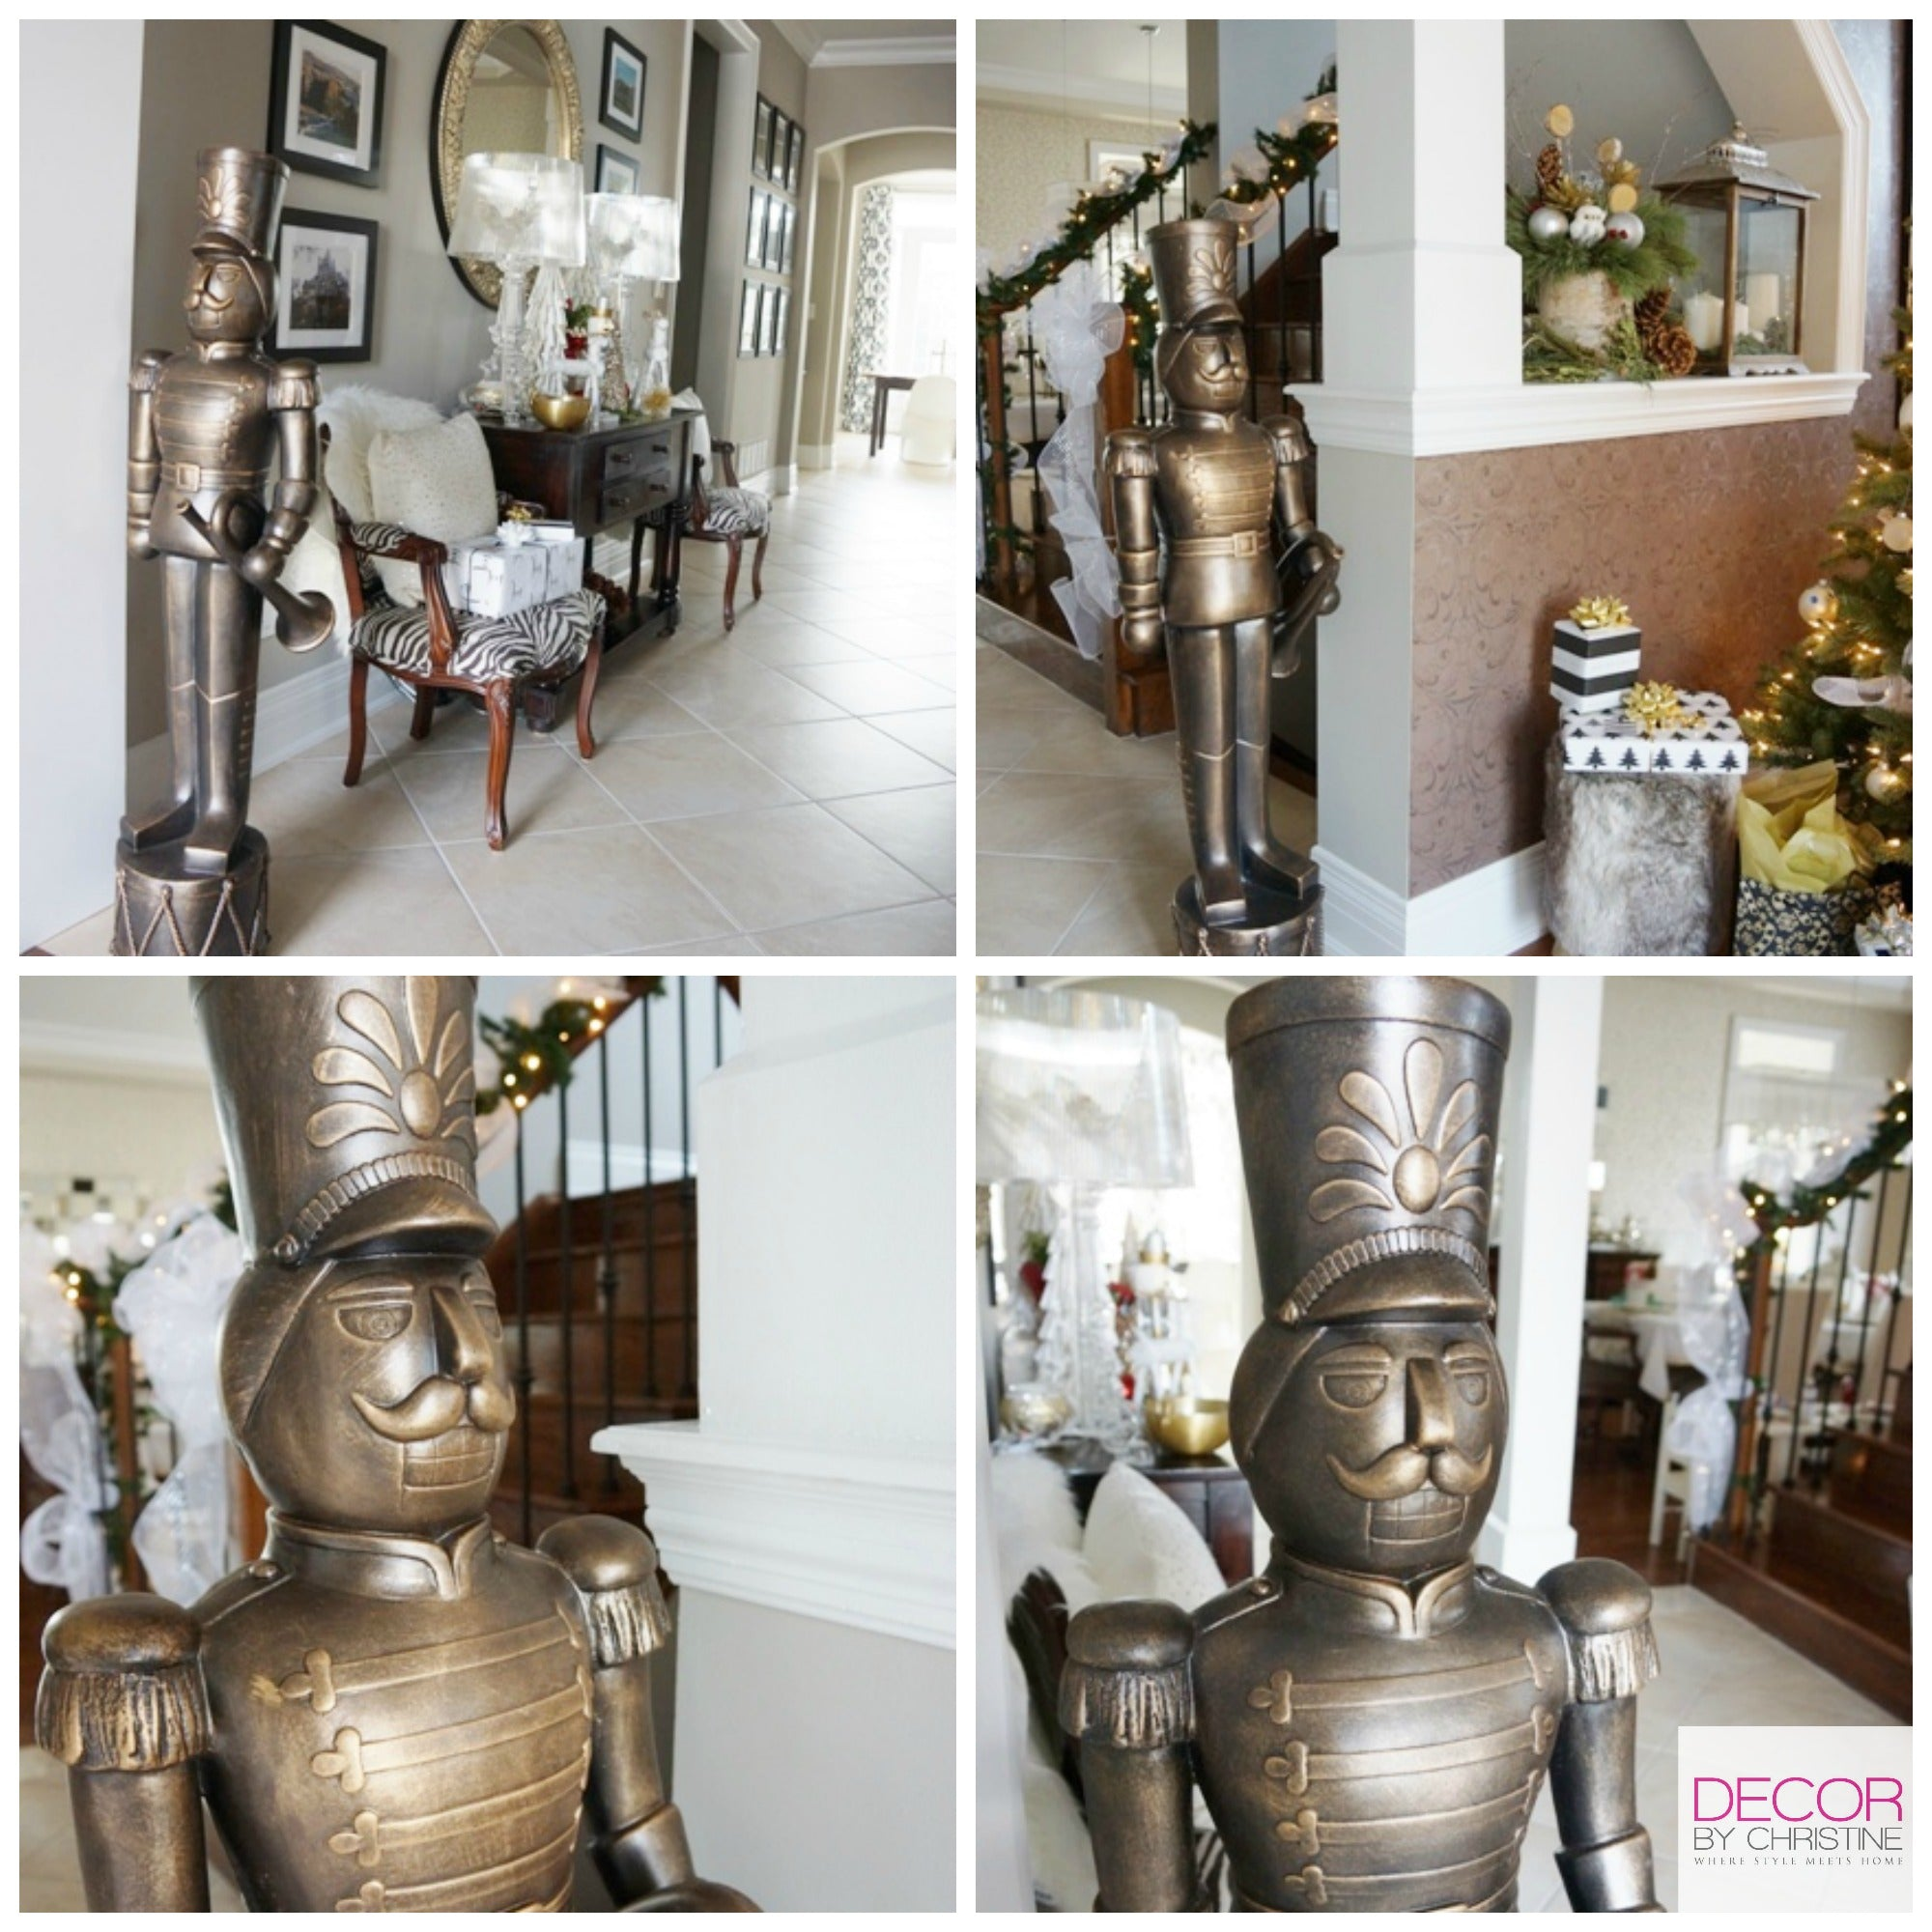 Decor by Christine LowesHolidayHomes large nutcrackers in foyer